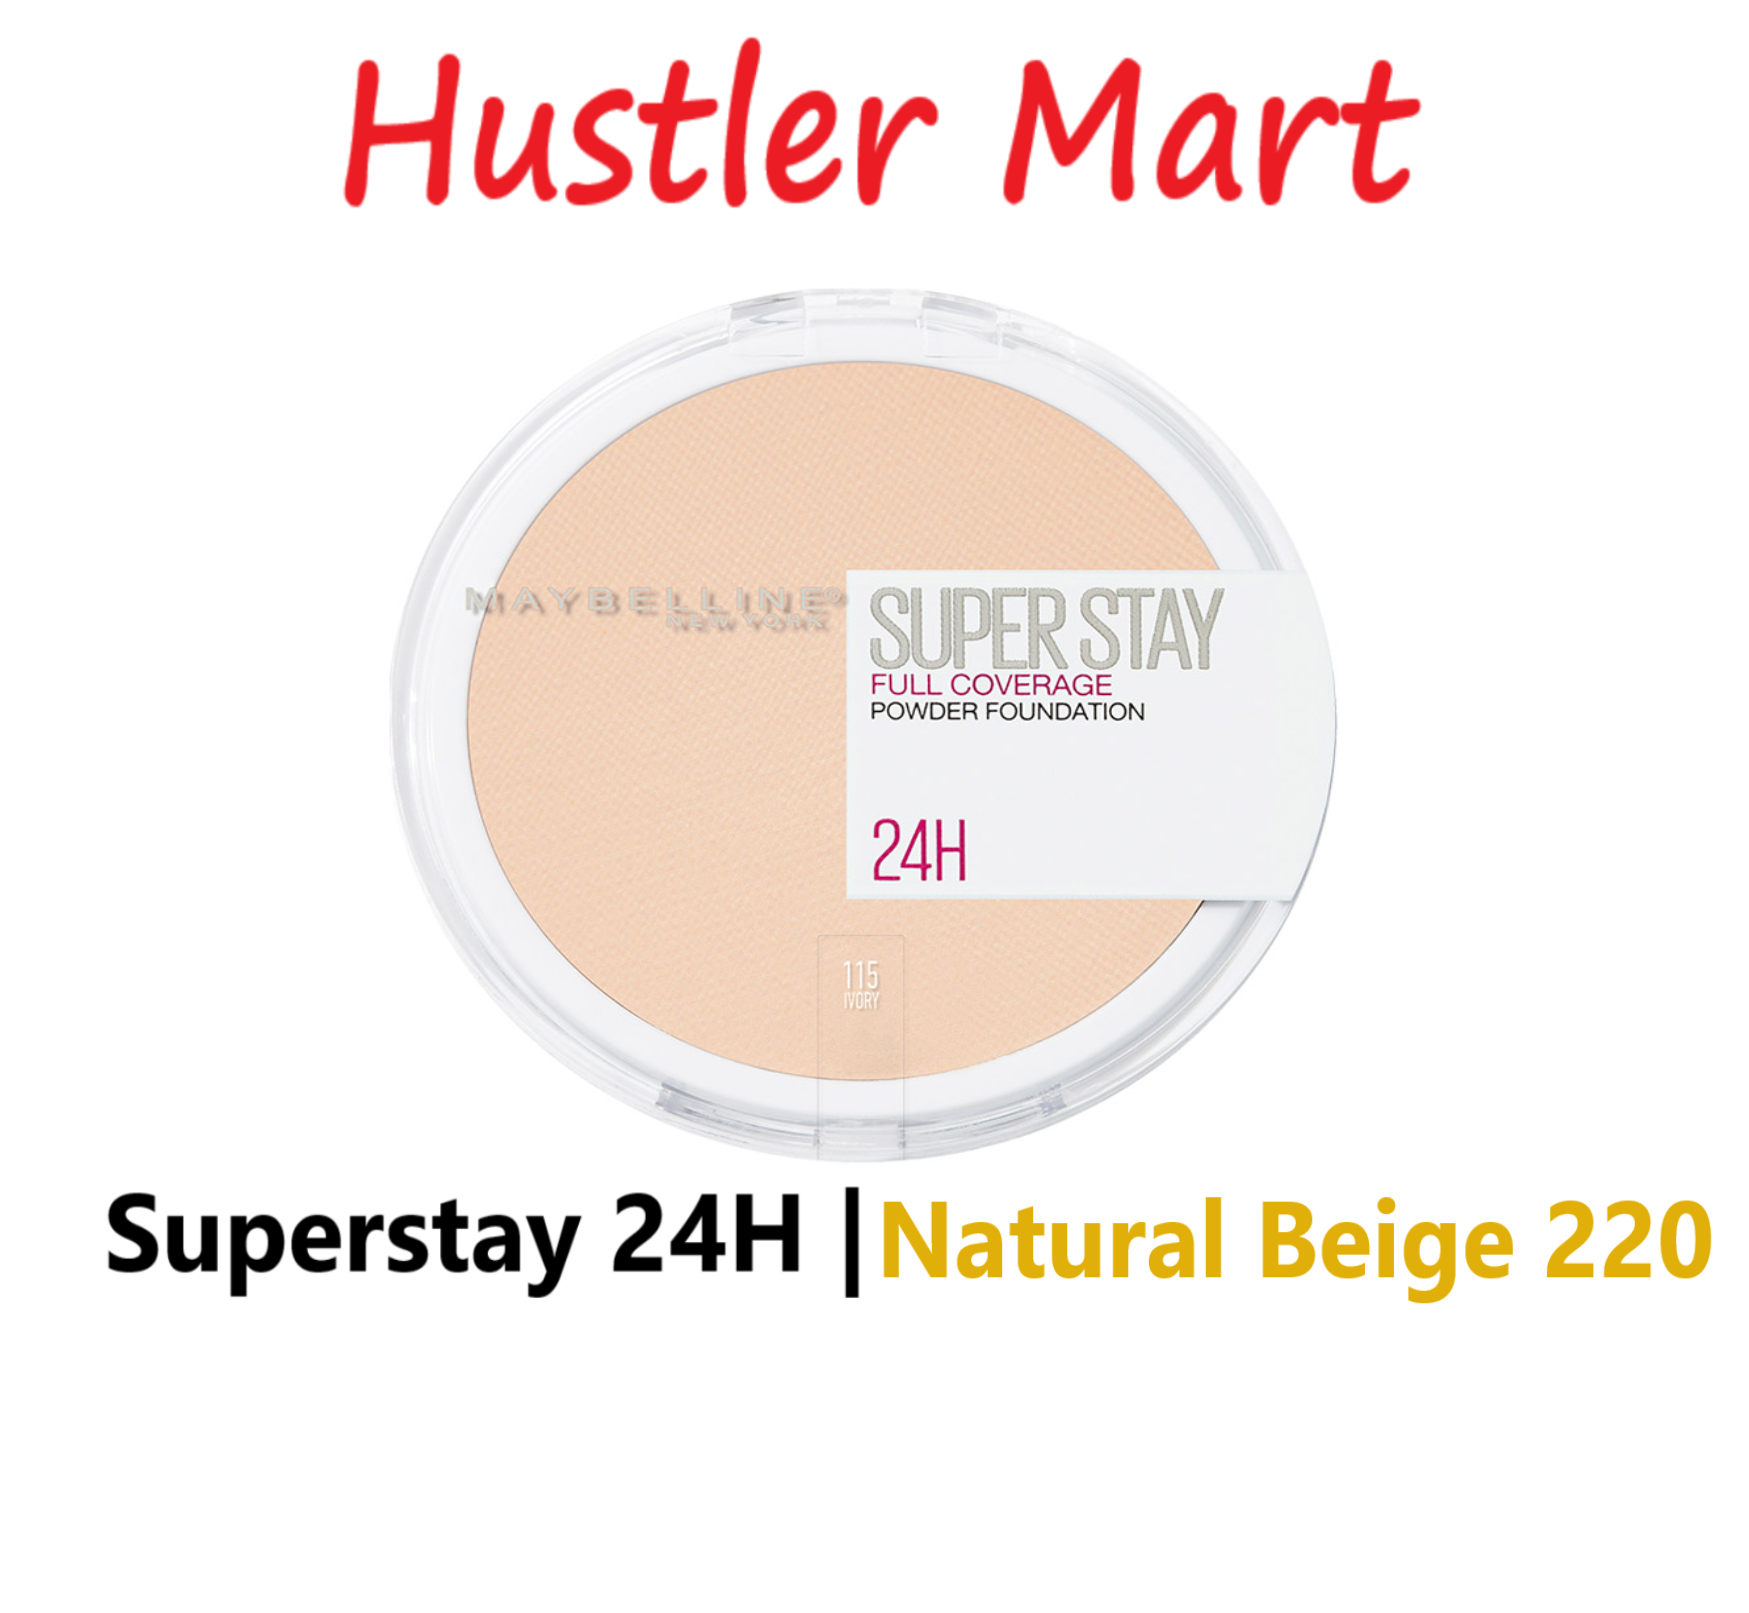 Maybelline Superstay 24H Full Coverage Powder Foundation - Natural Beige 220